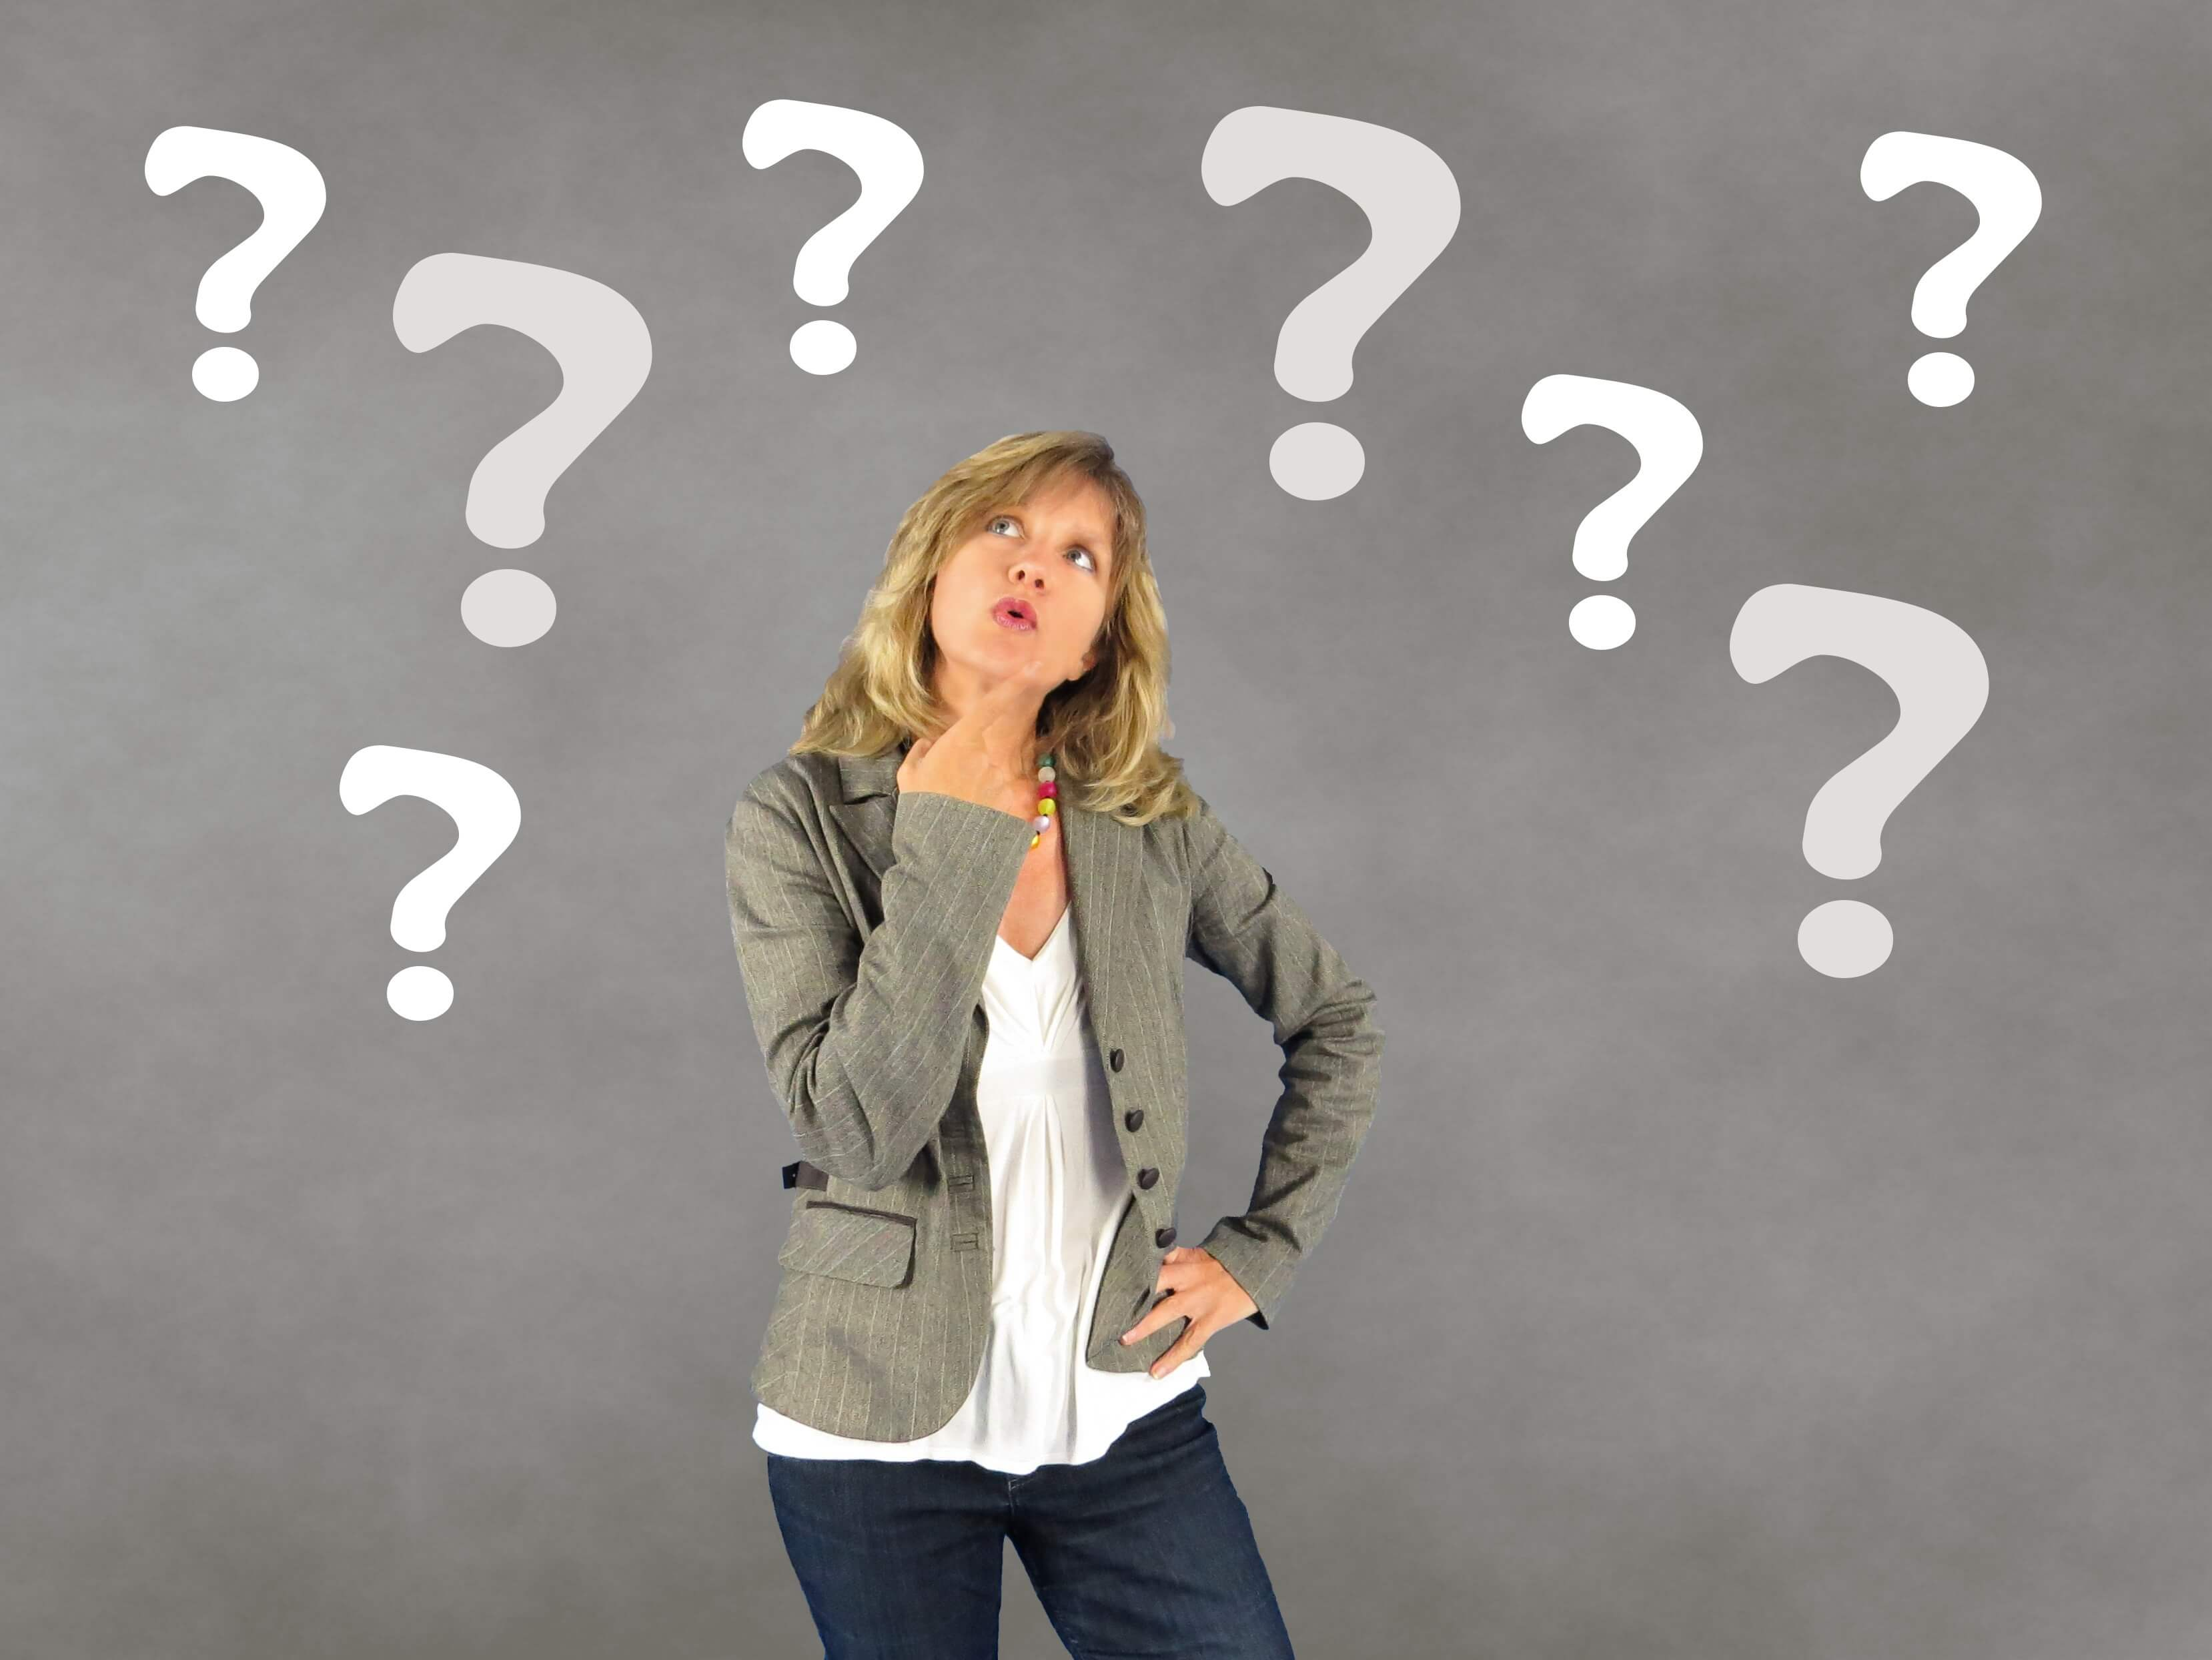 Wilshire Law Firm has the answers to your questions.